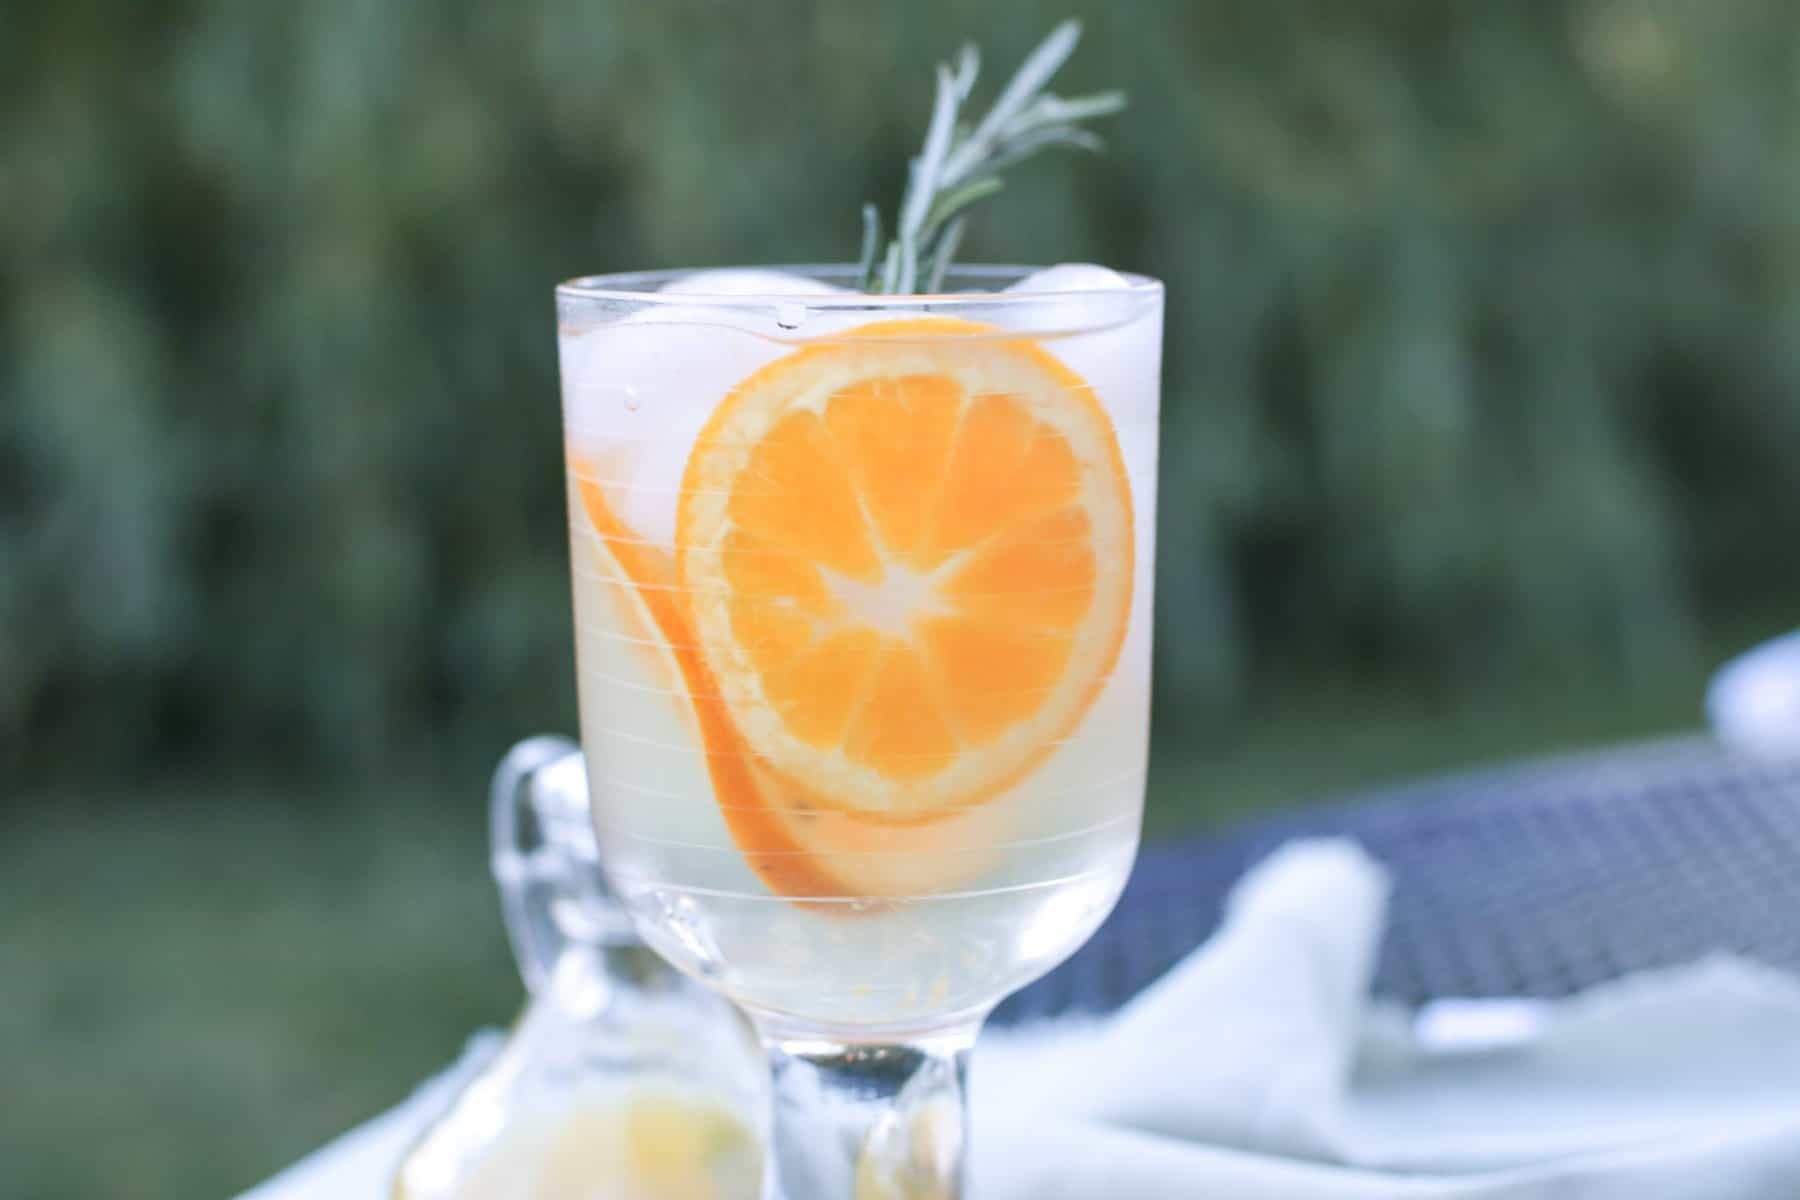 cirtrus champagne in stemmed glass with oranges in background